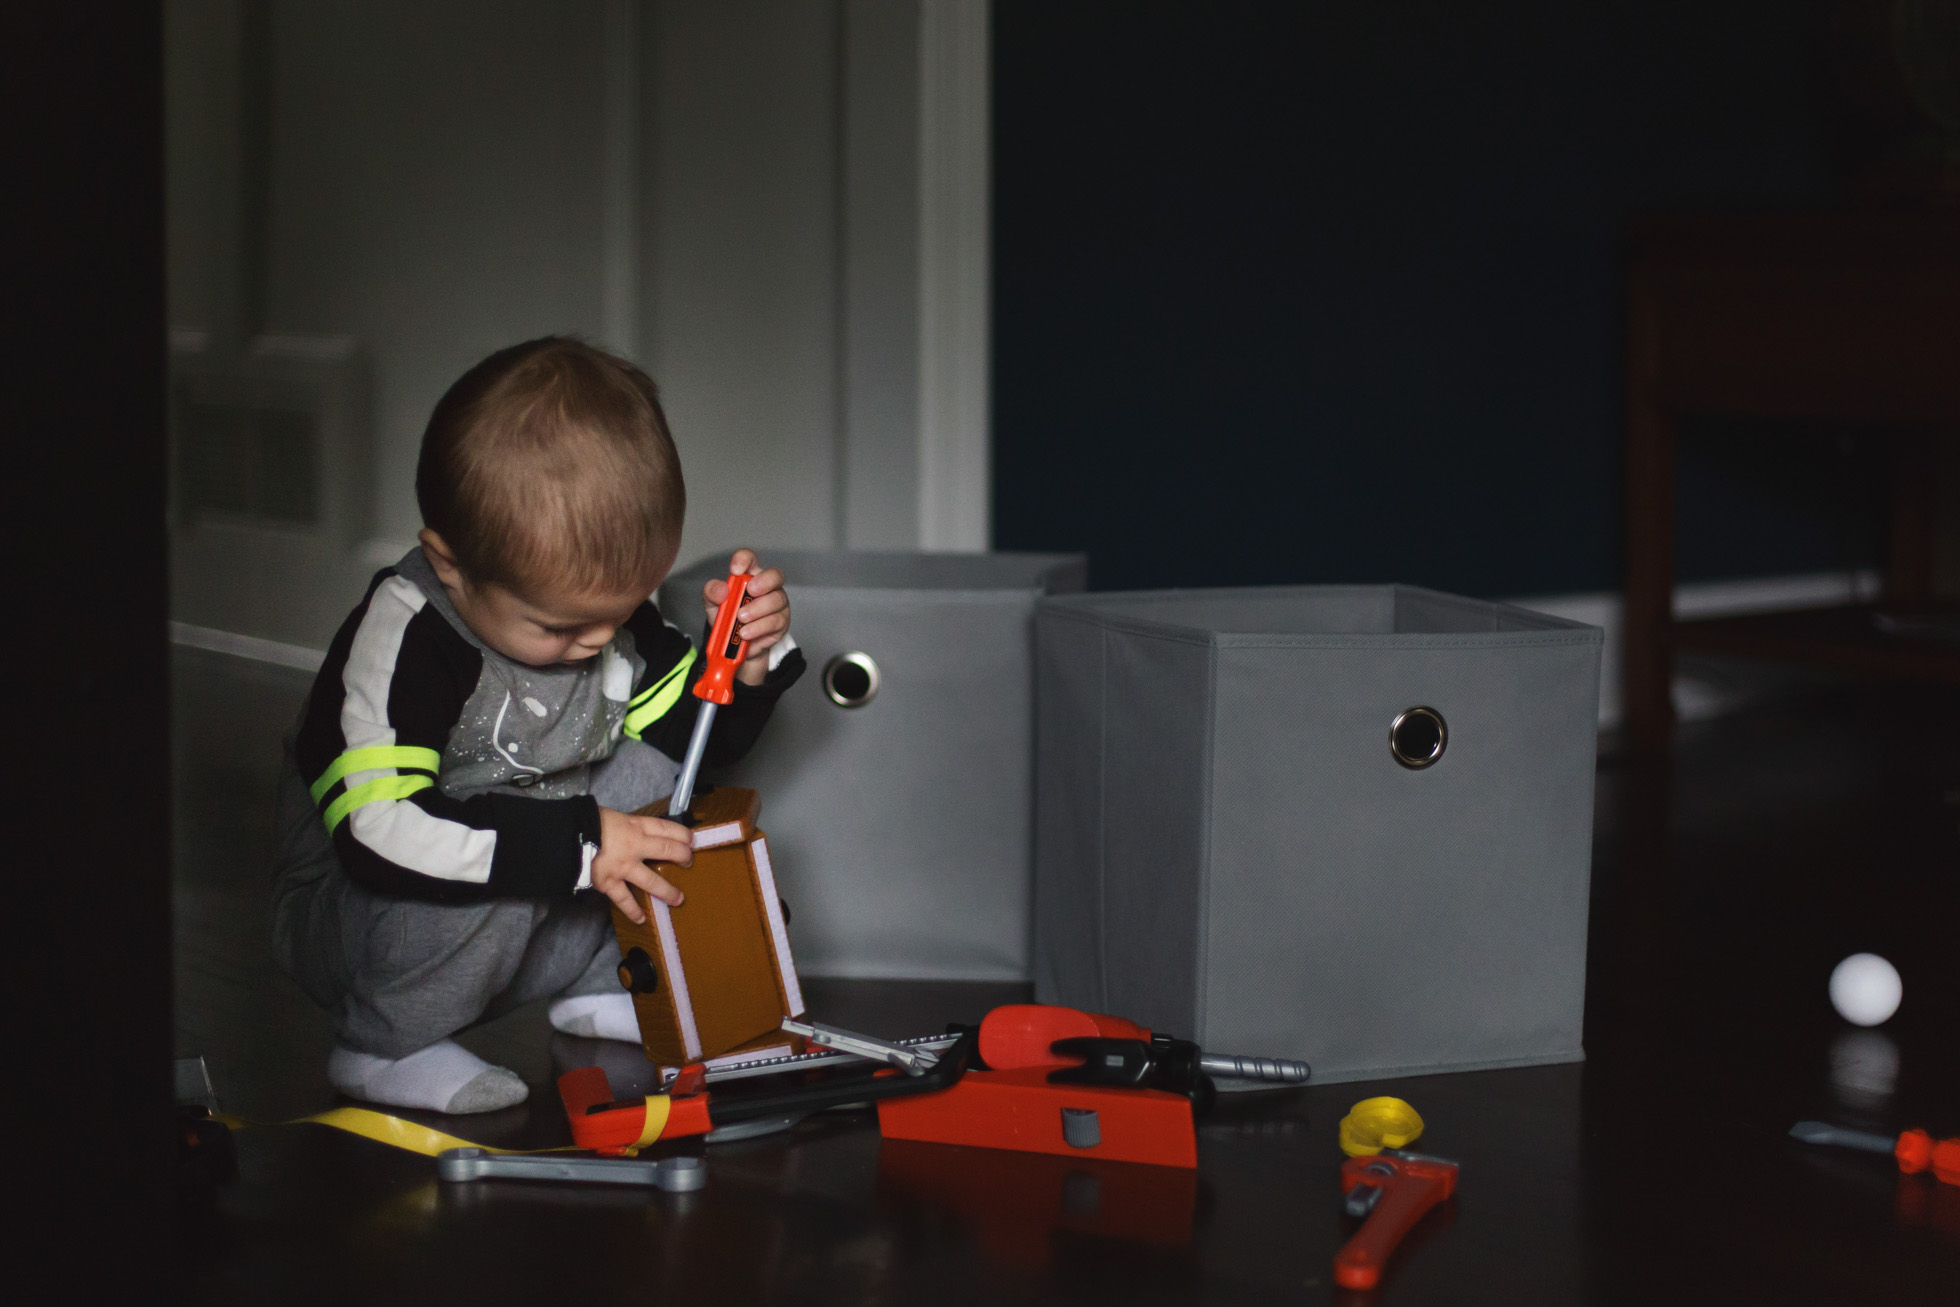 toddler_on_floor_playing_with_toys_marietta_family_photographer.jpg